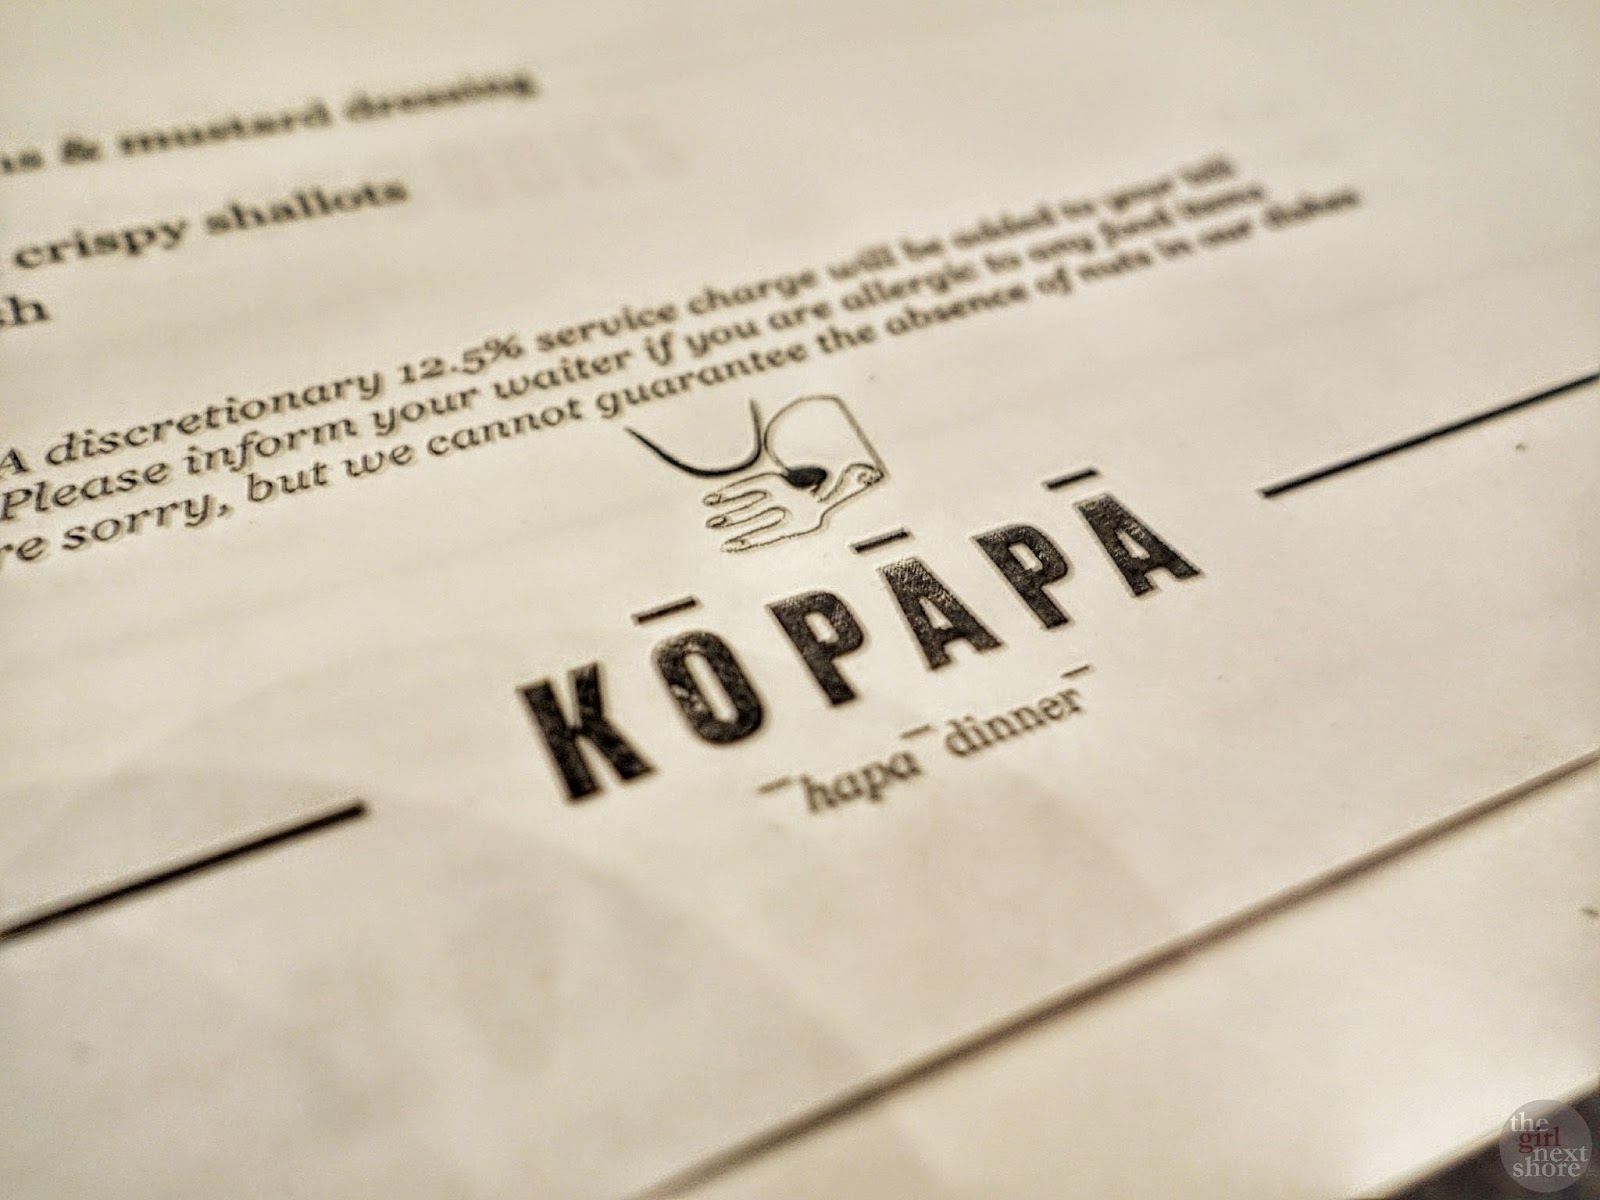 Kopapa Dinner: where I had a thought about service charge